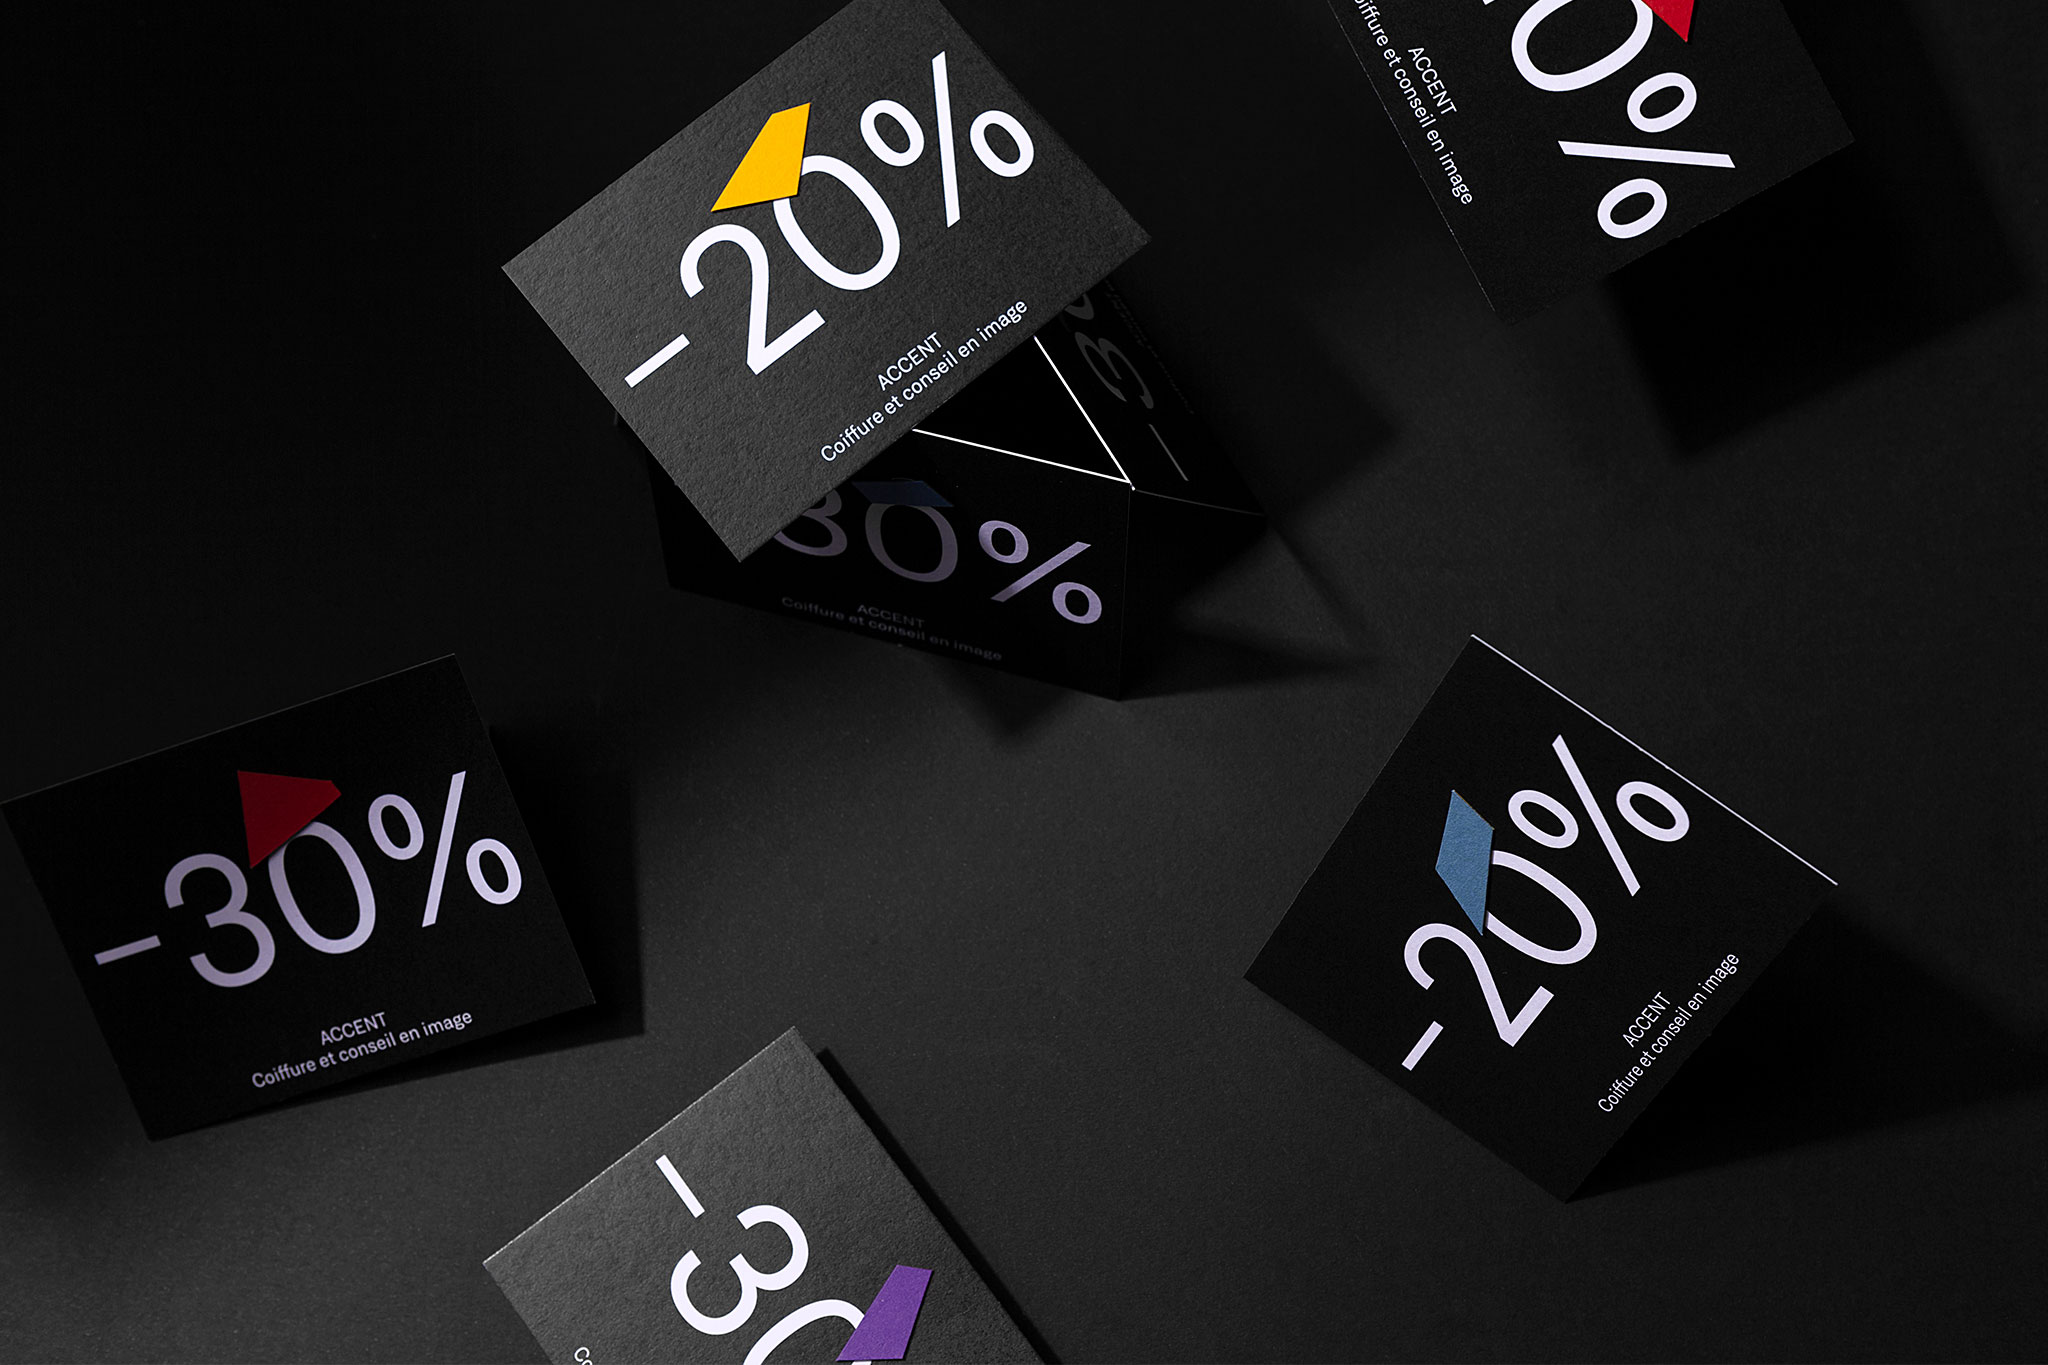 Accent special discount cards